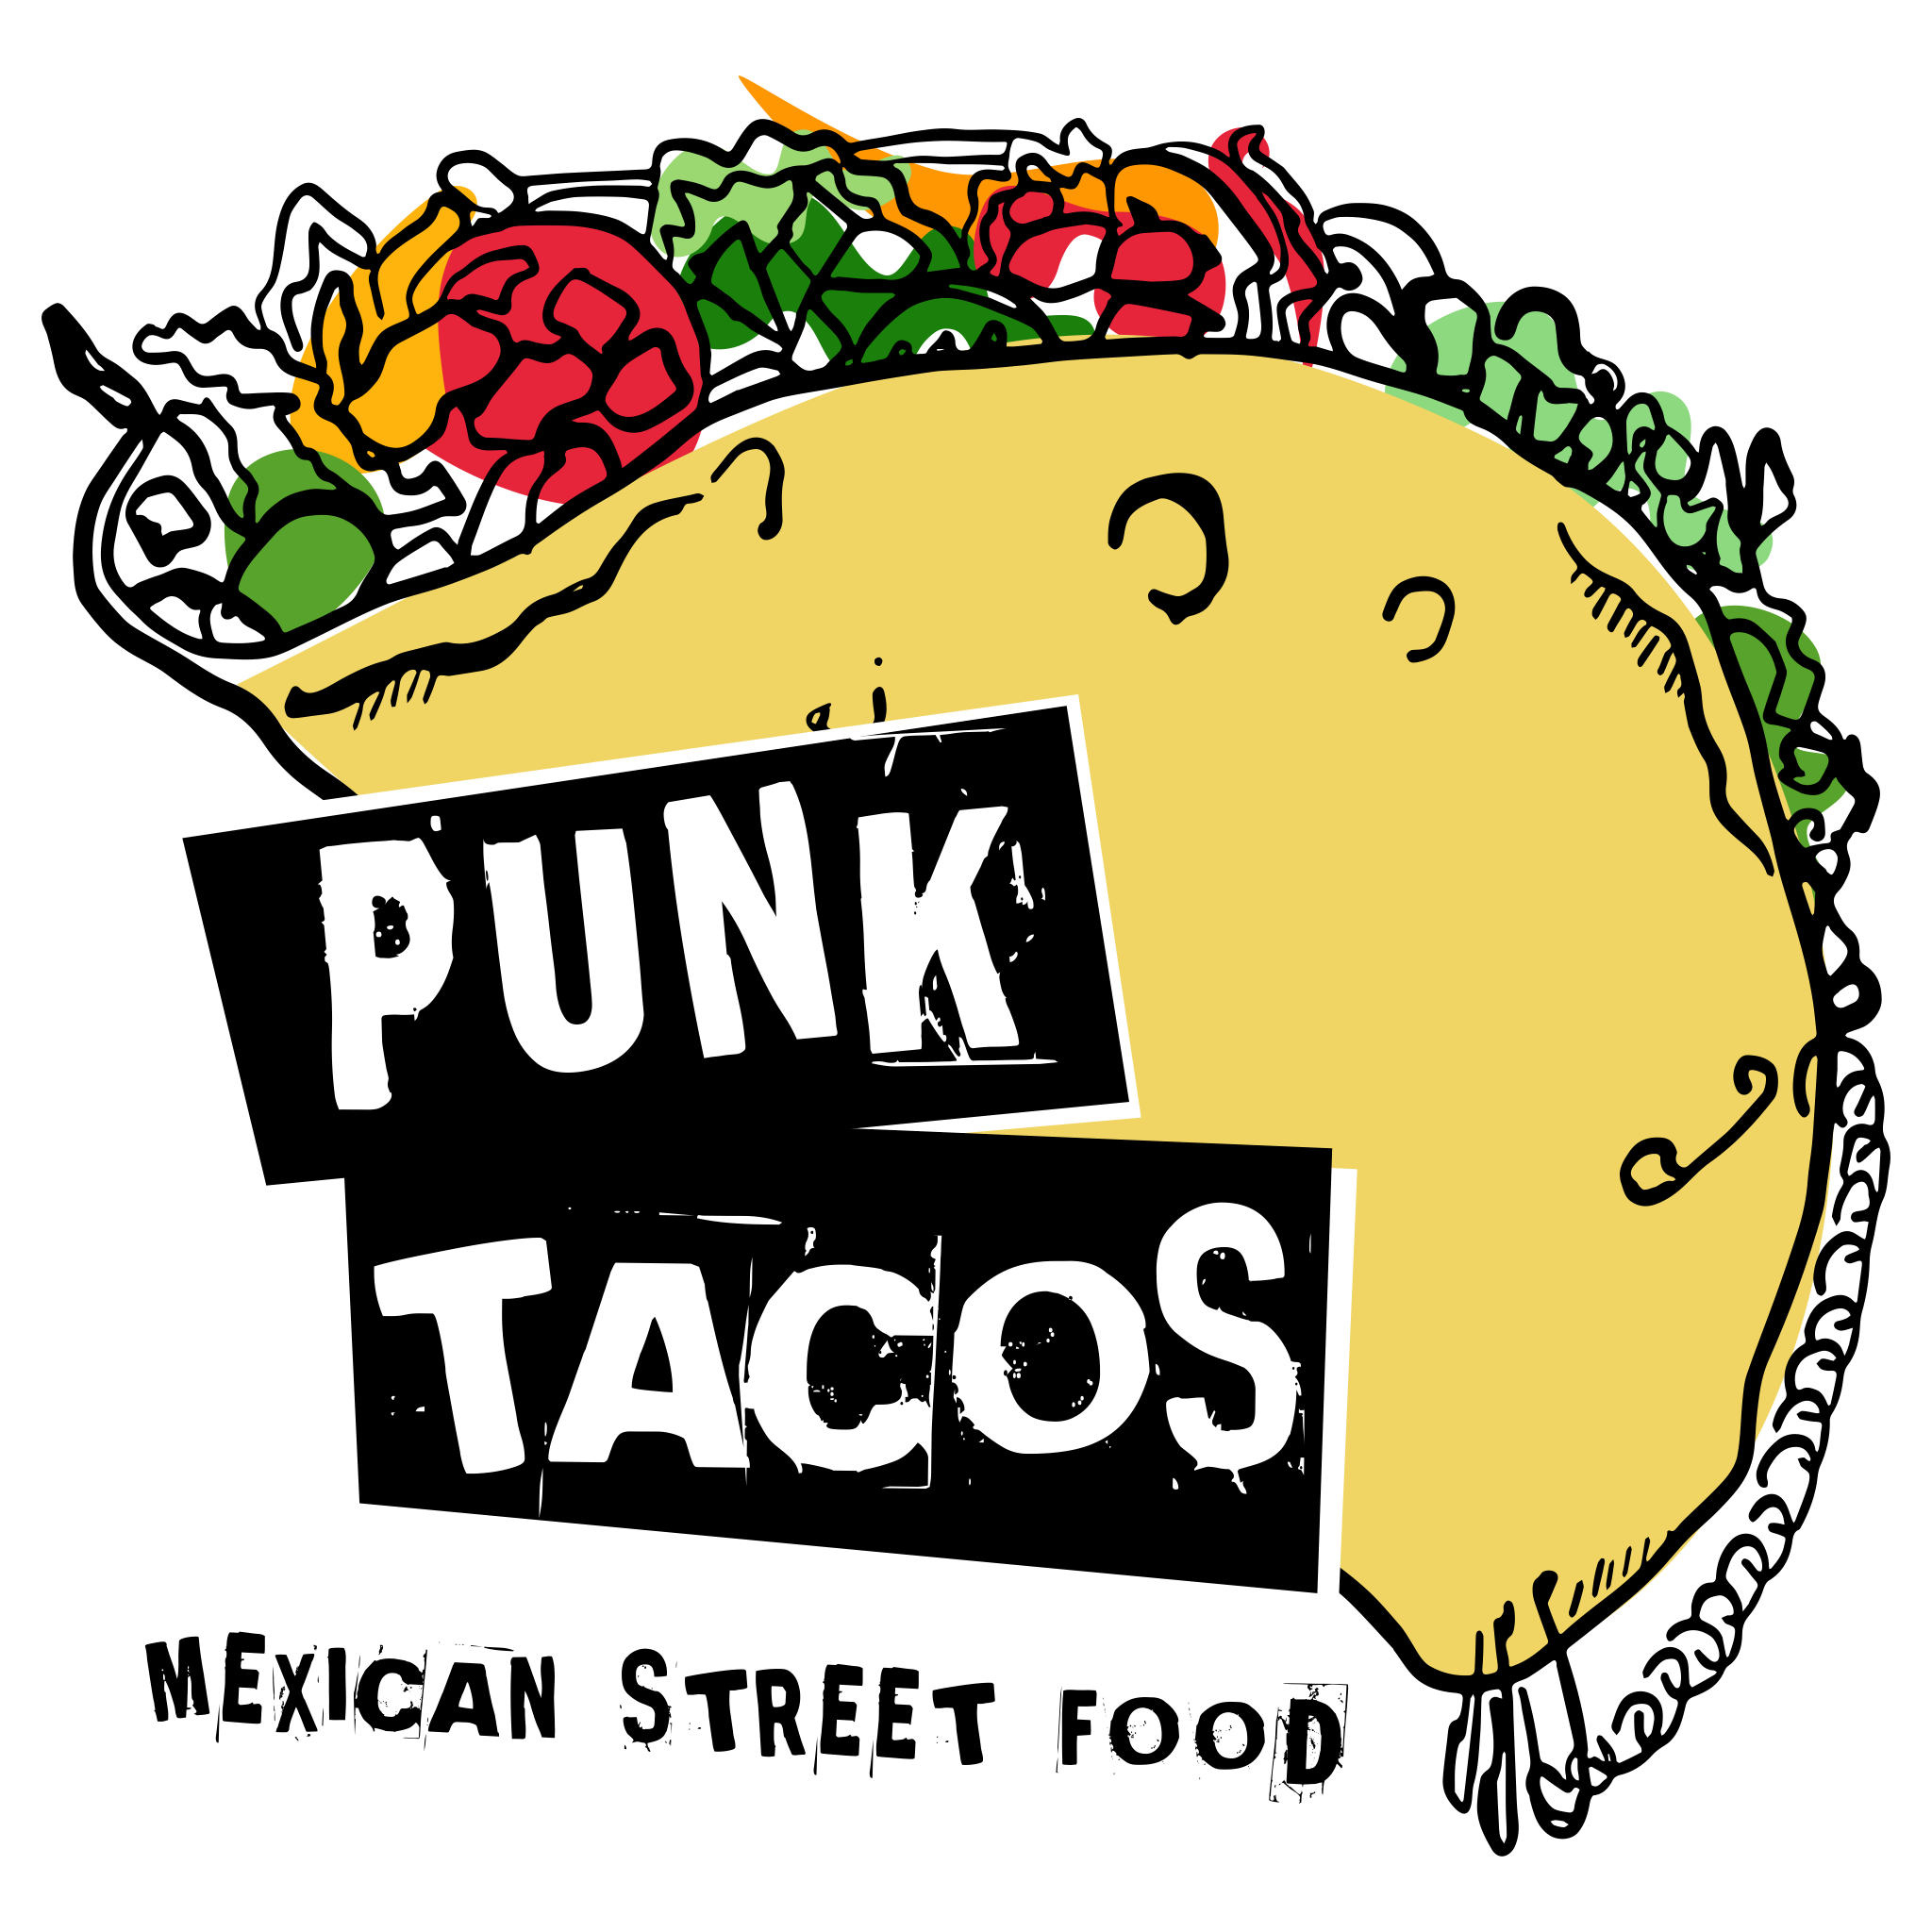 Tacos in Hastings, Battle, Bexhill and surrounding areas. Mexican street Food served from our vintage taco van